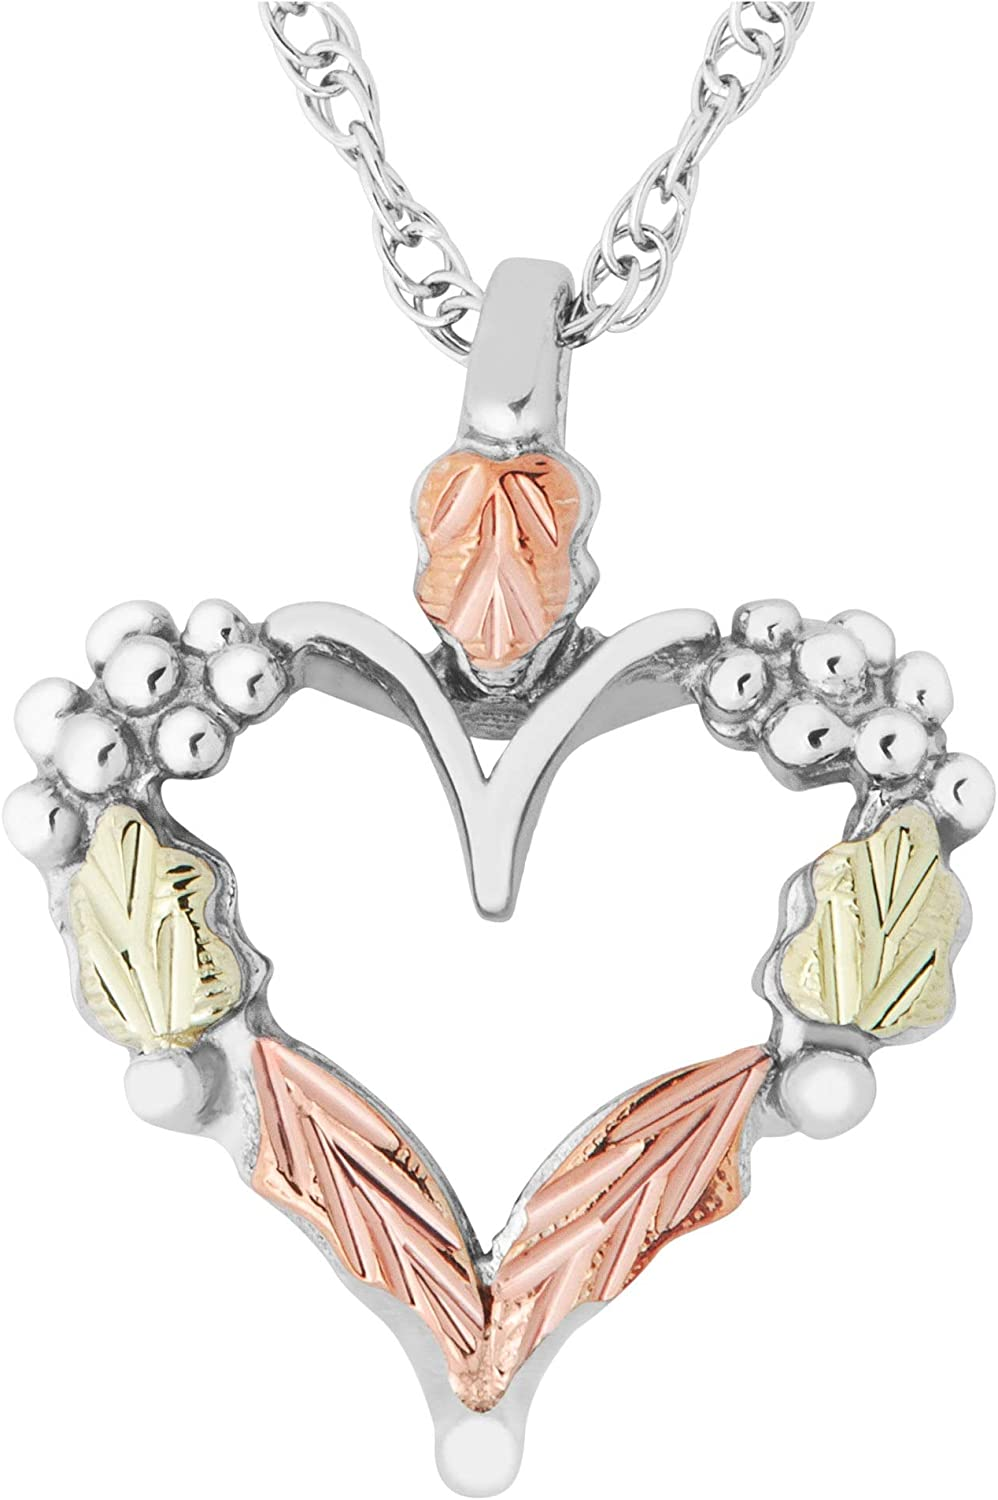 Phoenix Mall Petite Heart Pendant Necklace Sterling Rose Gre 12k and Silver unisex